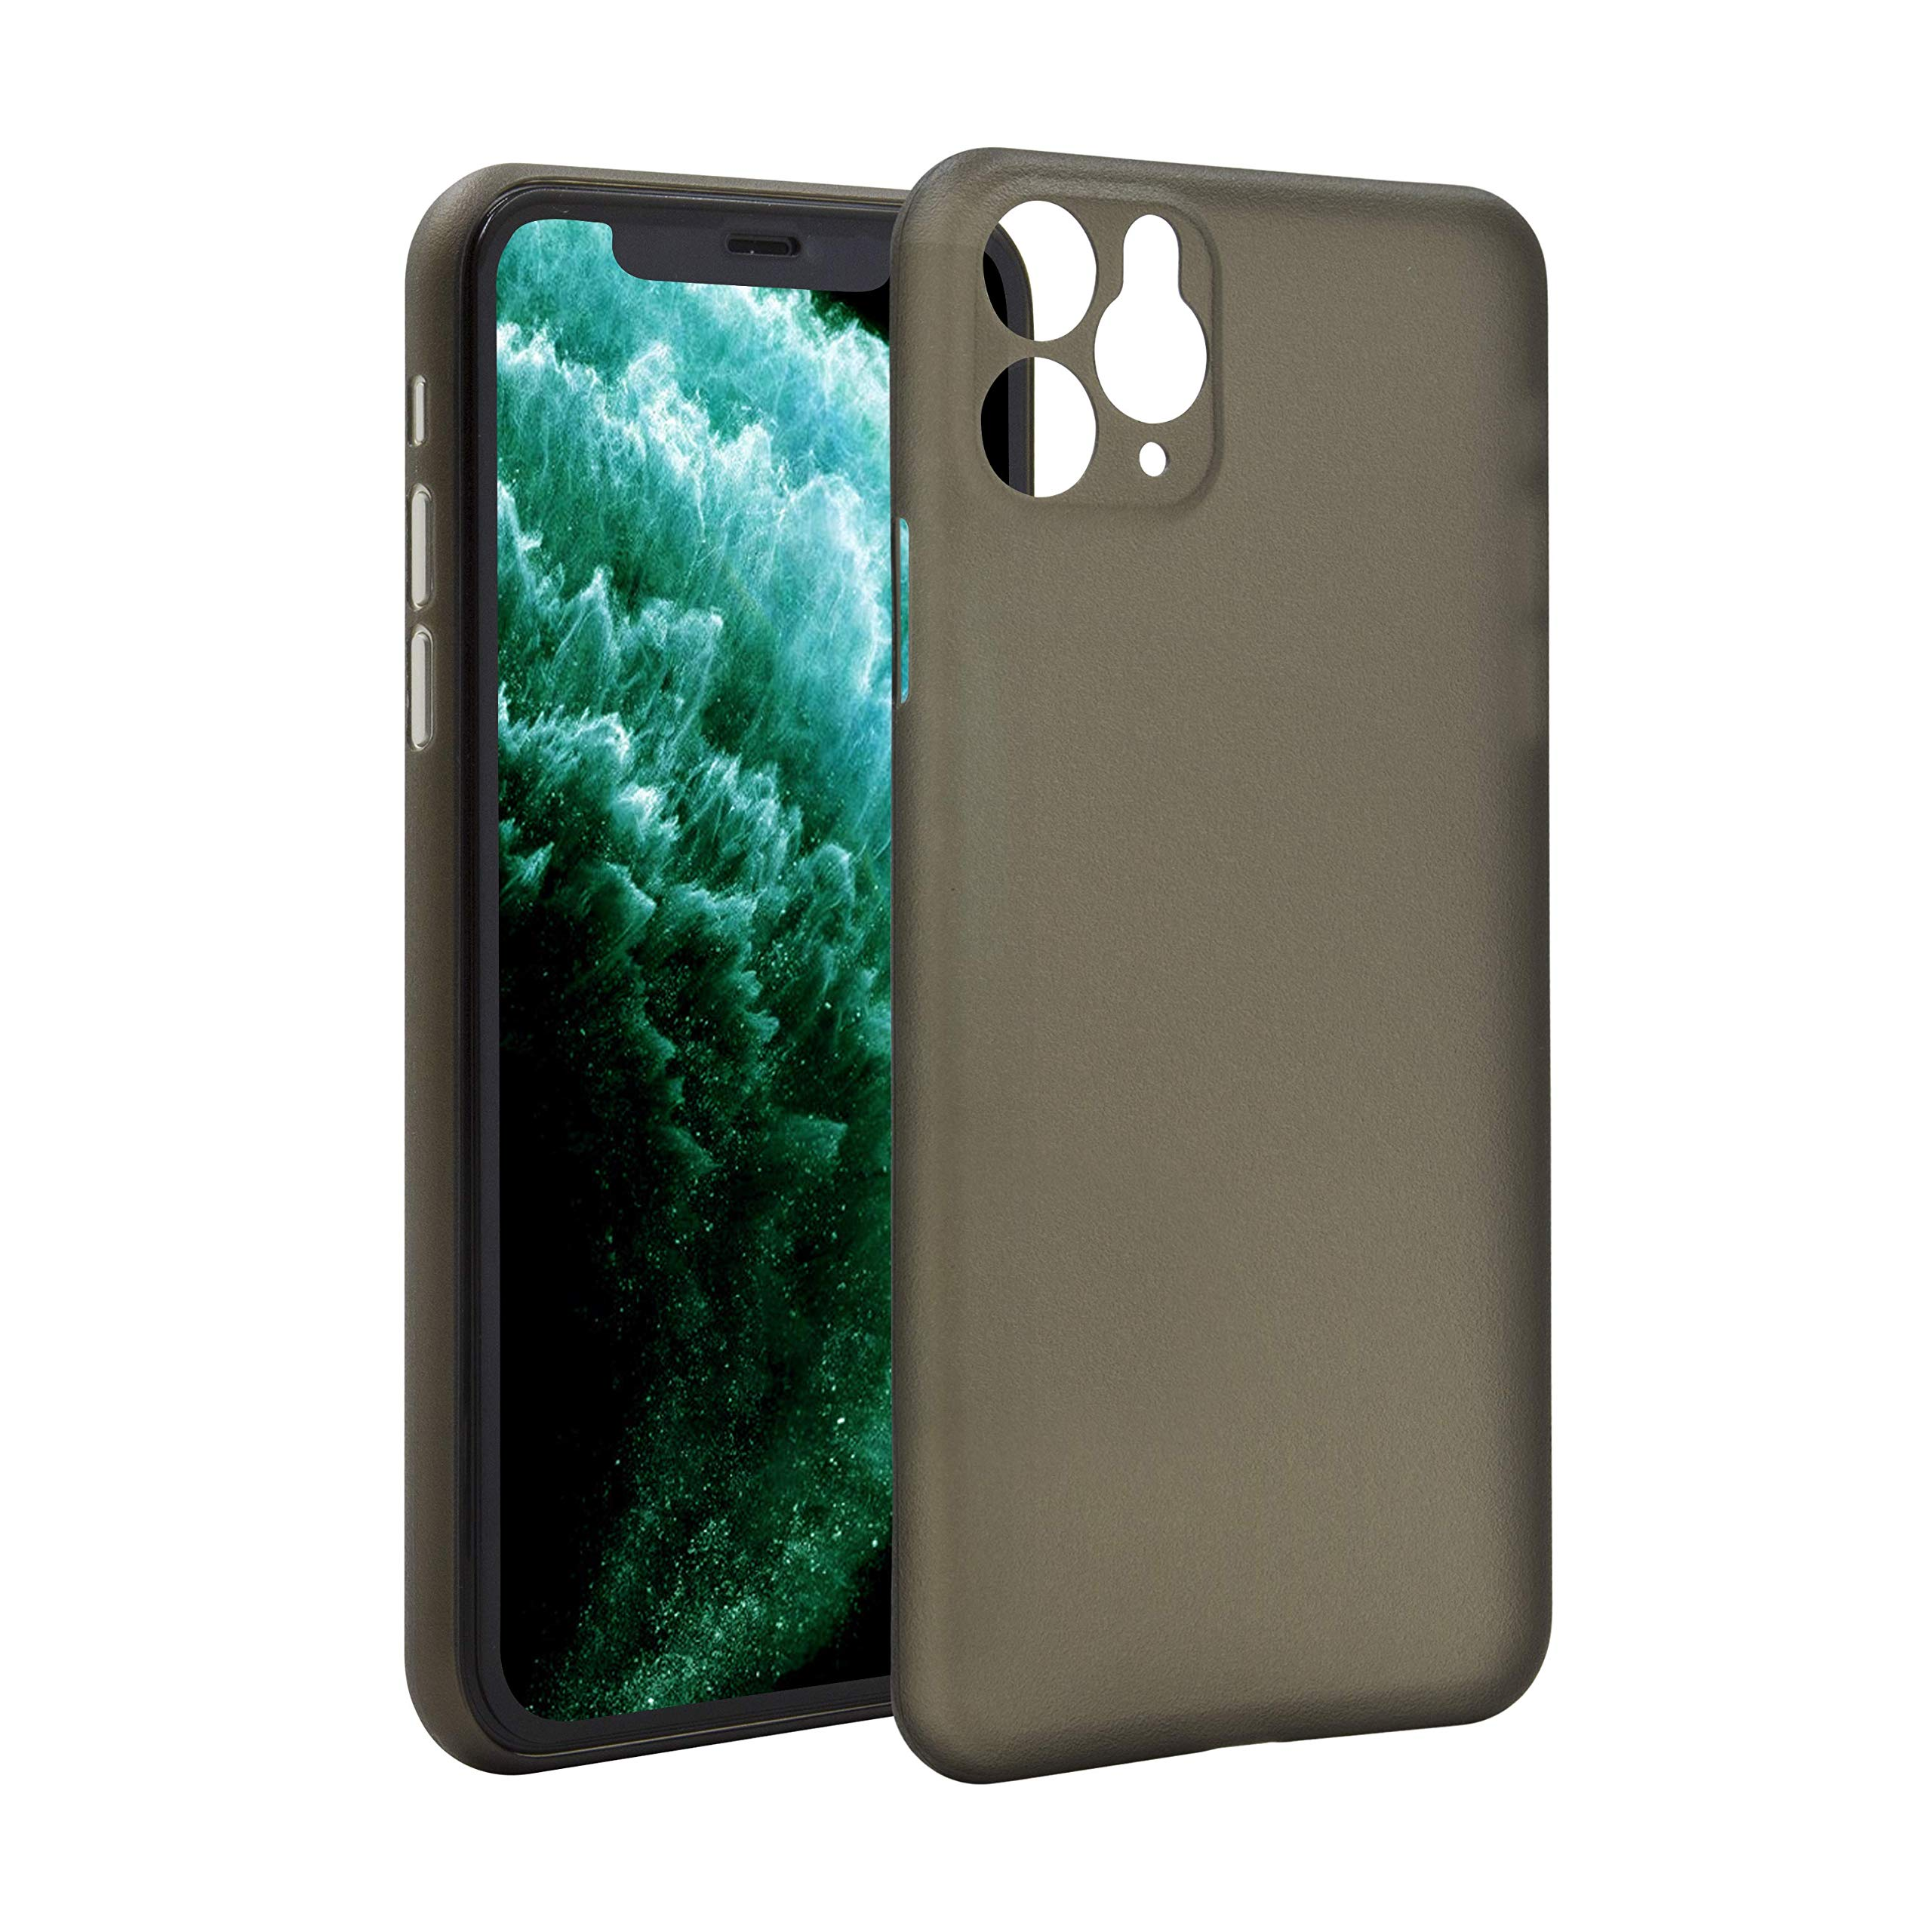 Twinscase Slim Fit Light iPhone 11 Pro Max Minimalist Case, Ultra-Thin Full Protective Ultra-Light Cover with Matte Finish Phone Case for iPhone 11 Pro Max 6.5 inch (2019), Frosted Black